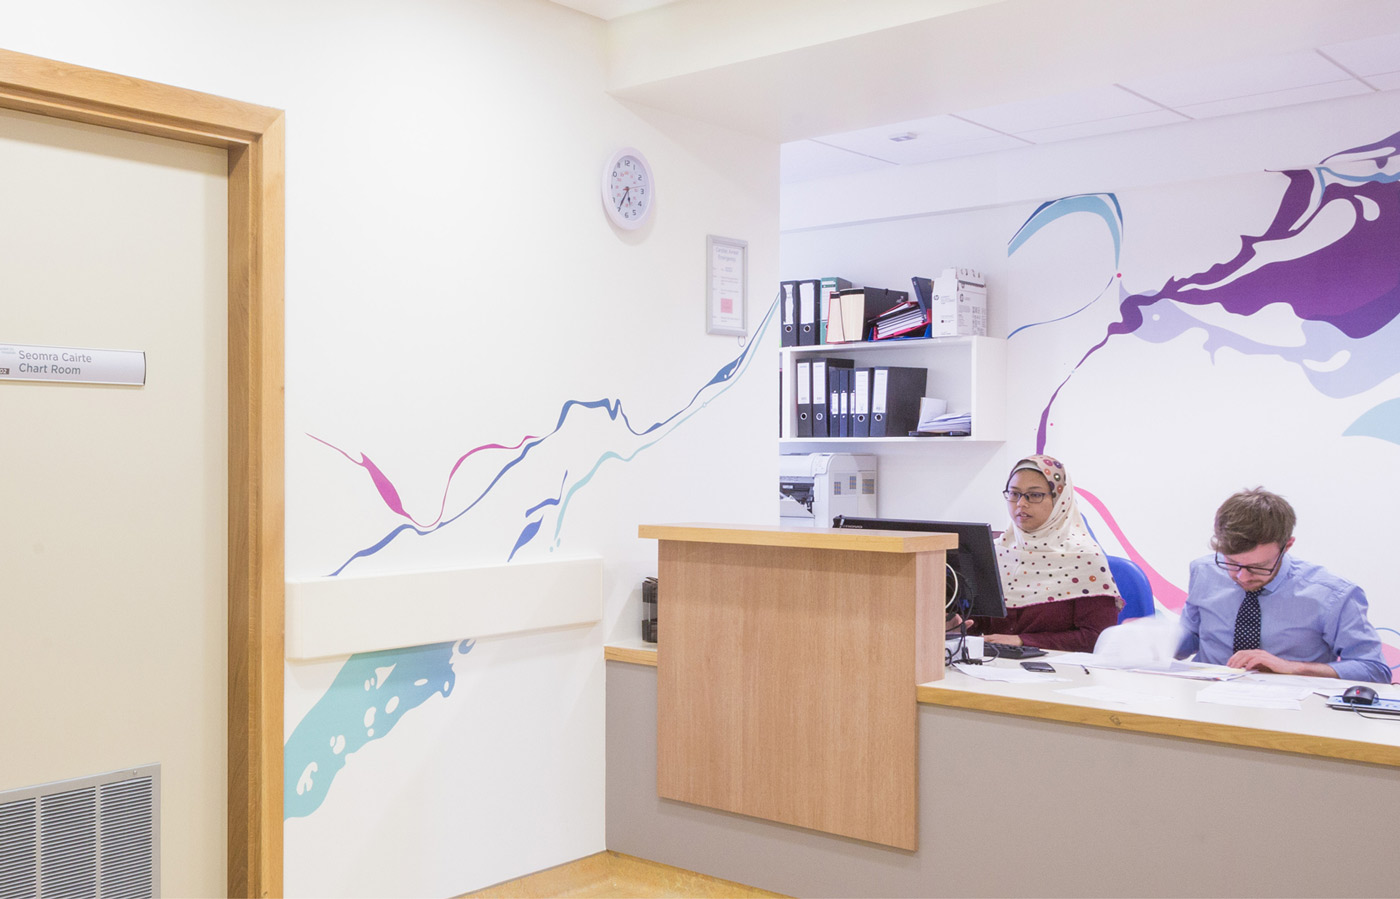 Print and signage in the reception area of the Cystic Fibrosis Unit at the University Hospital Limerick